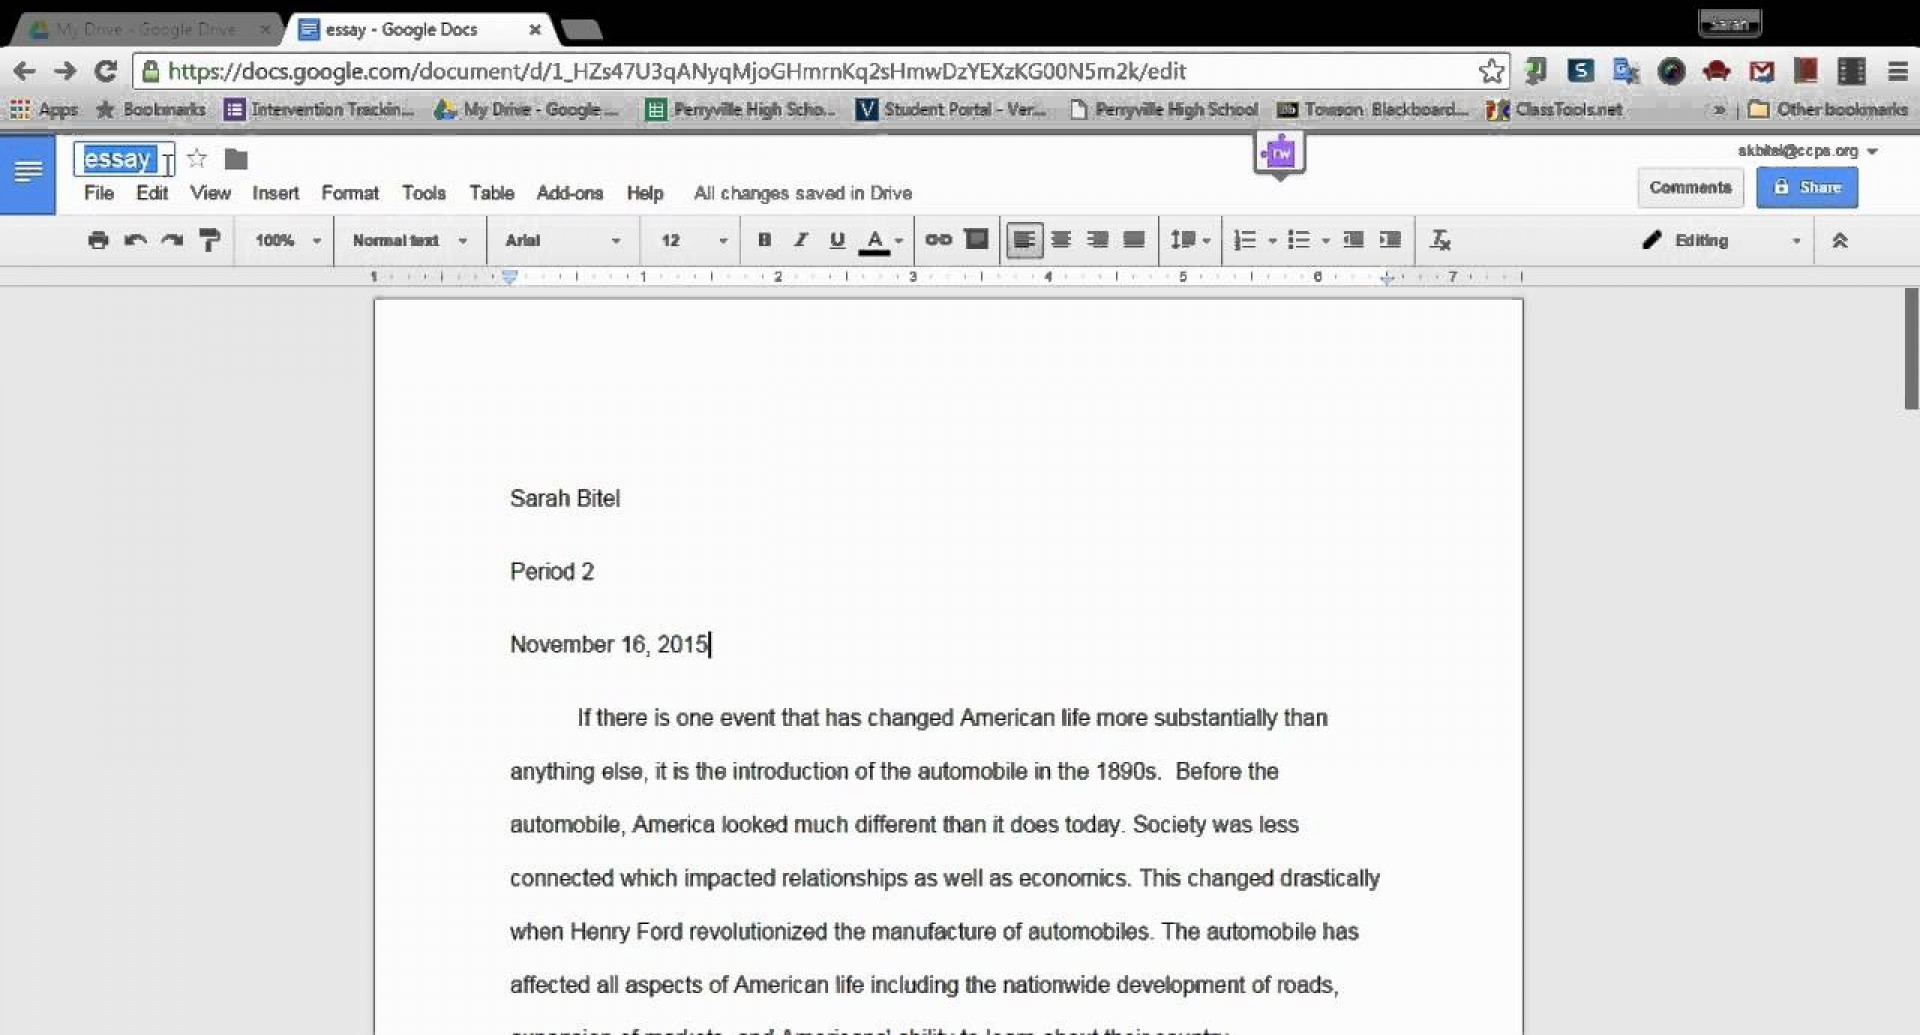 001 Essay Example Google 1940184461 International Relations Outstanding Corrector Search Engine 1920